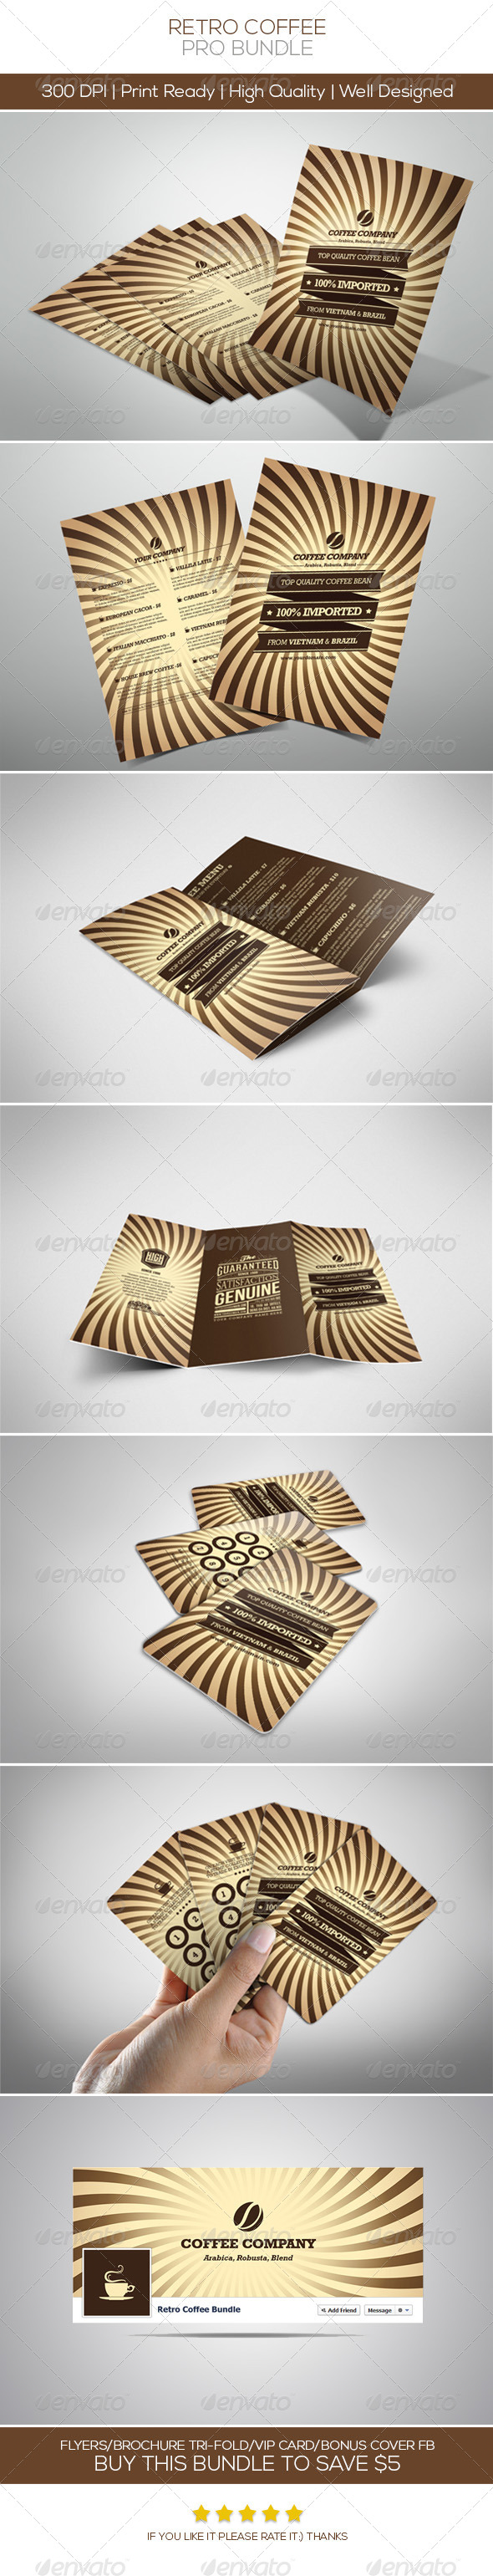 Retro Coffee Bundle - Restaurant Flyers